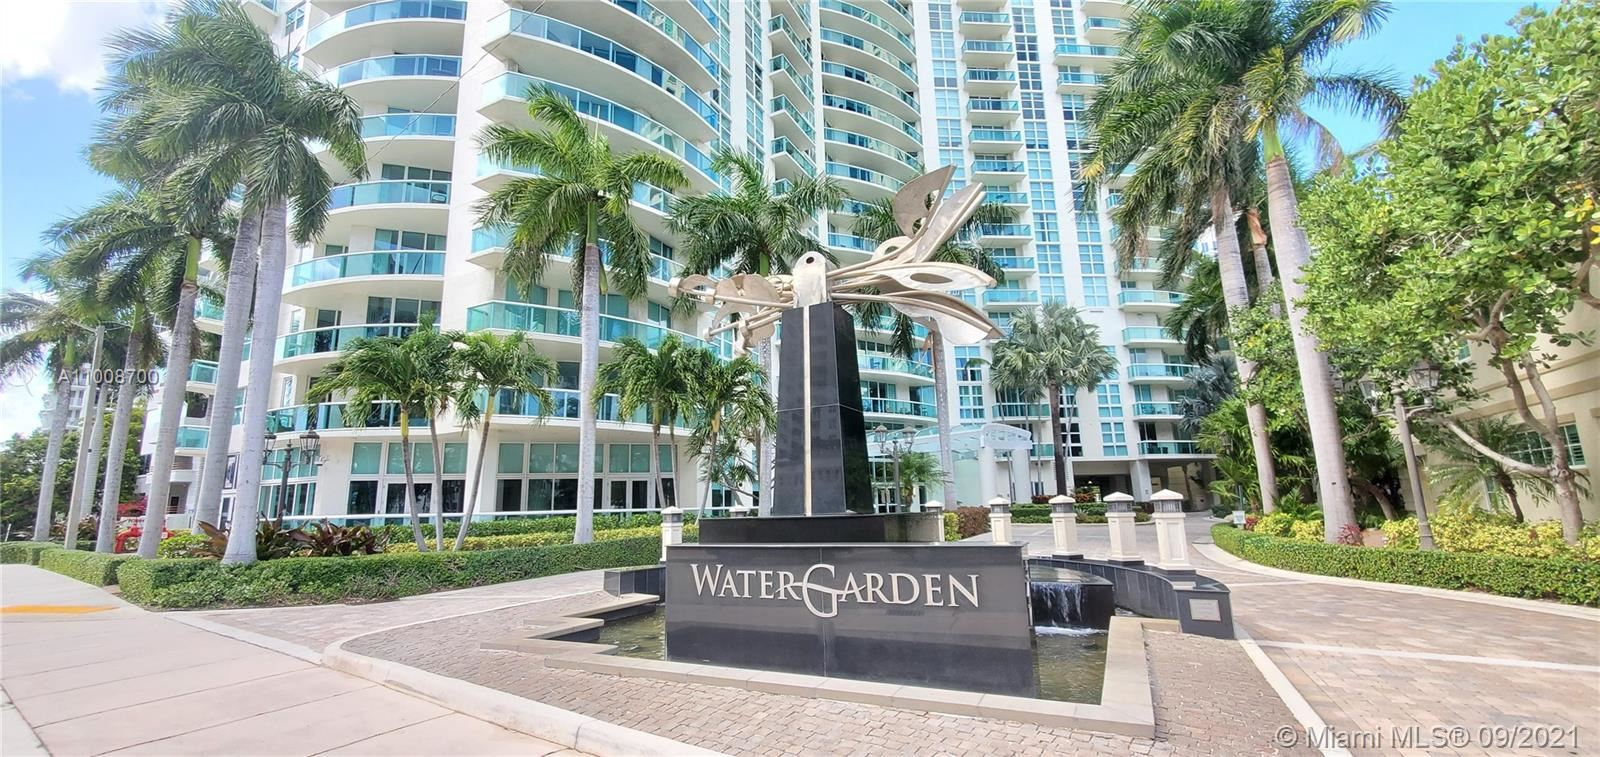 347 N New River Dr E #503, Fort Lauderdale, FL 33301 - #: A11008700